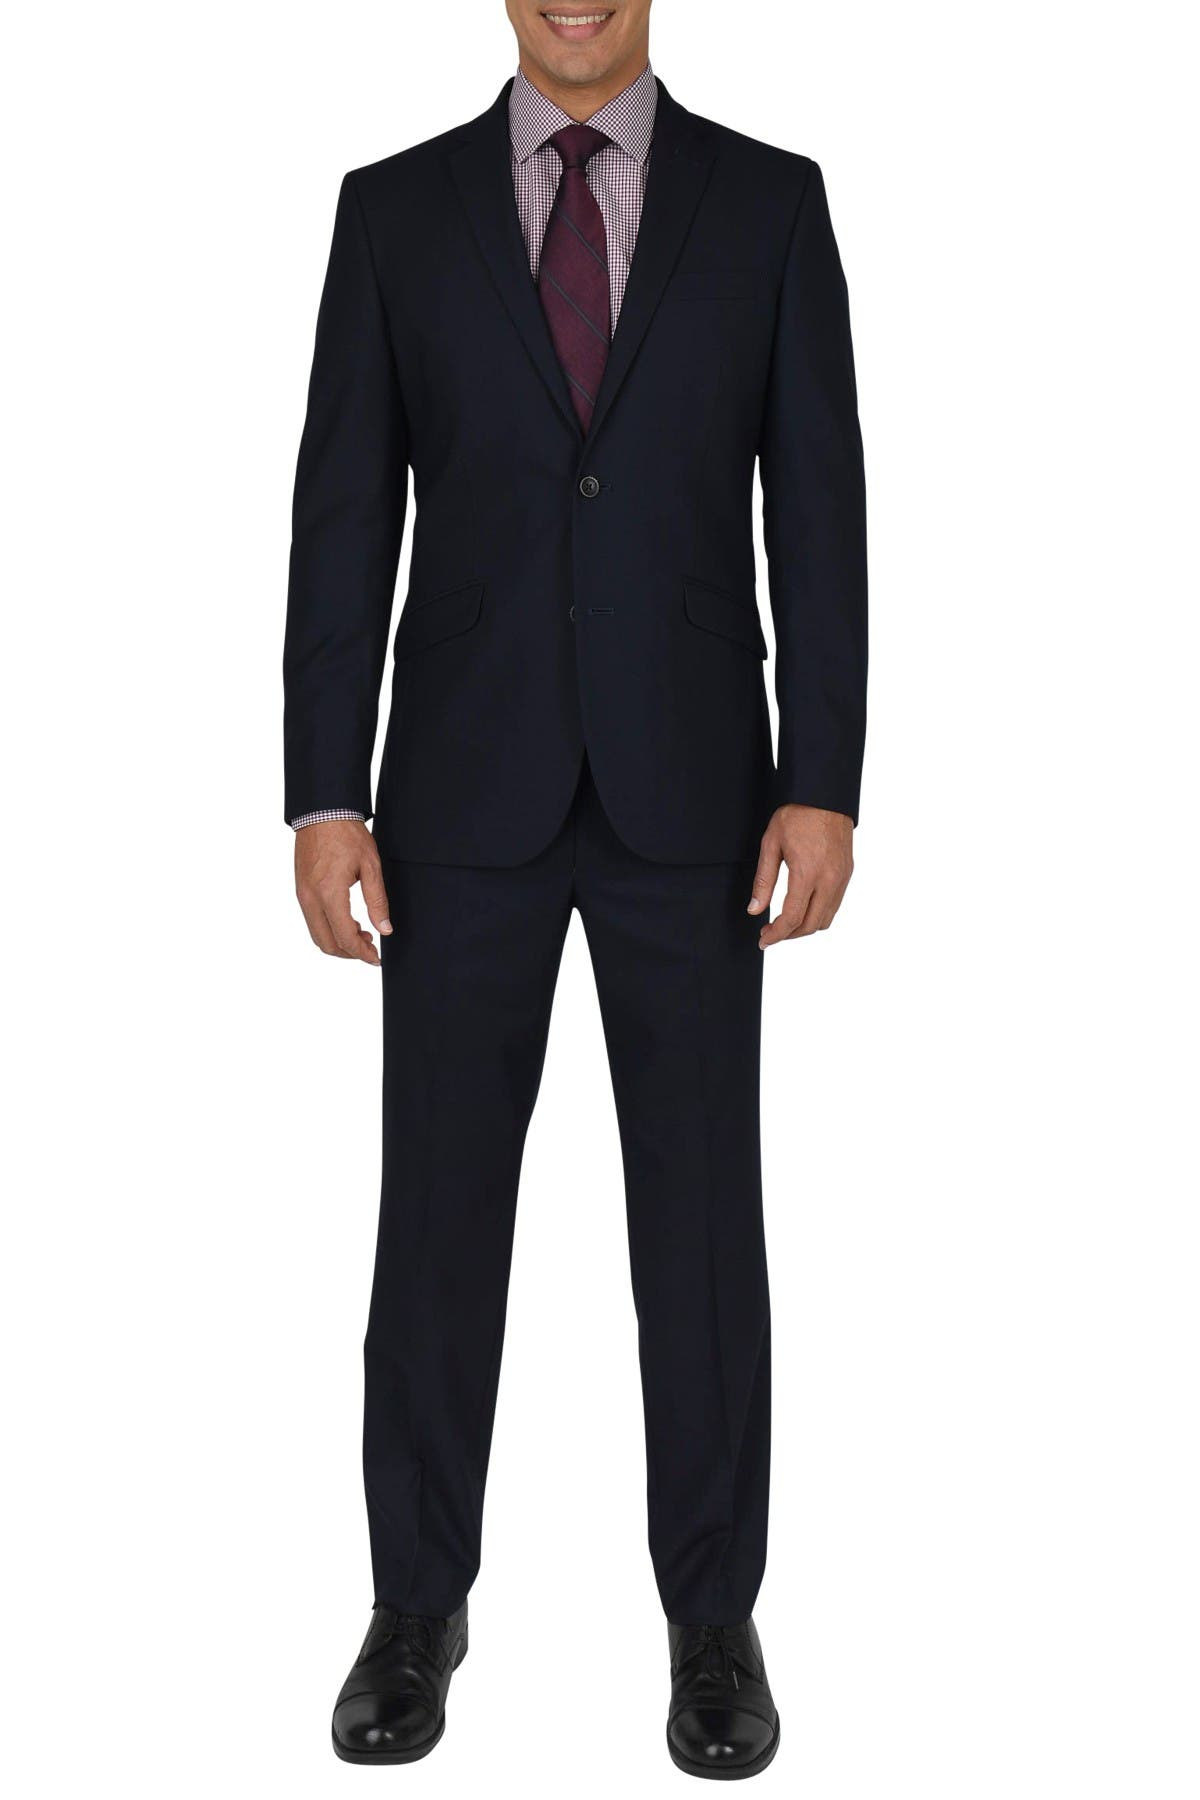 Image of Kenneth Cole Reaction Navy Shadow Check Two Button Notch Lapel Performance Slim Fit Suit